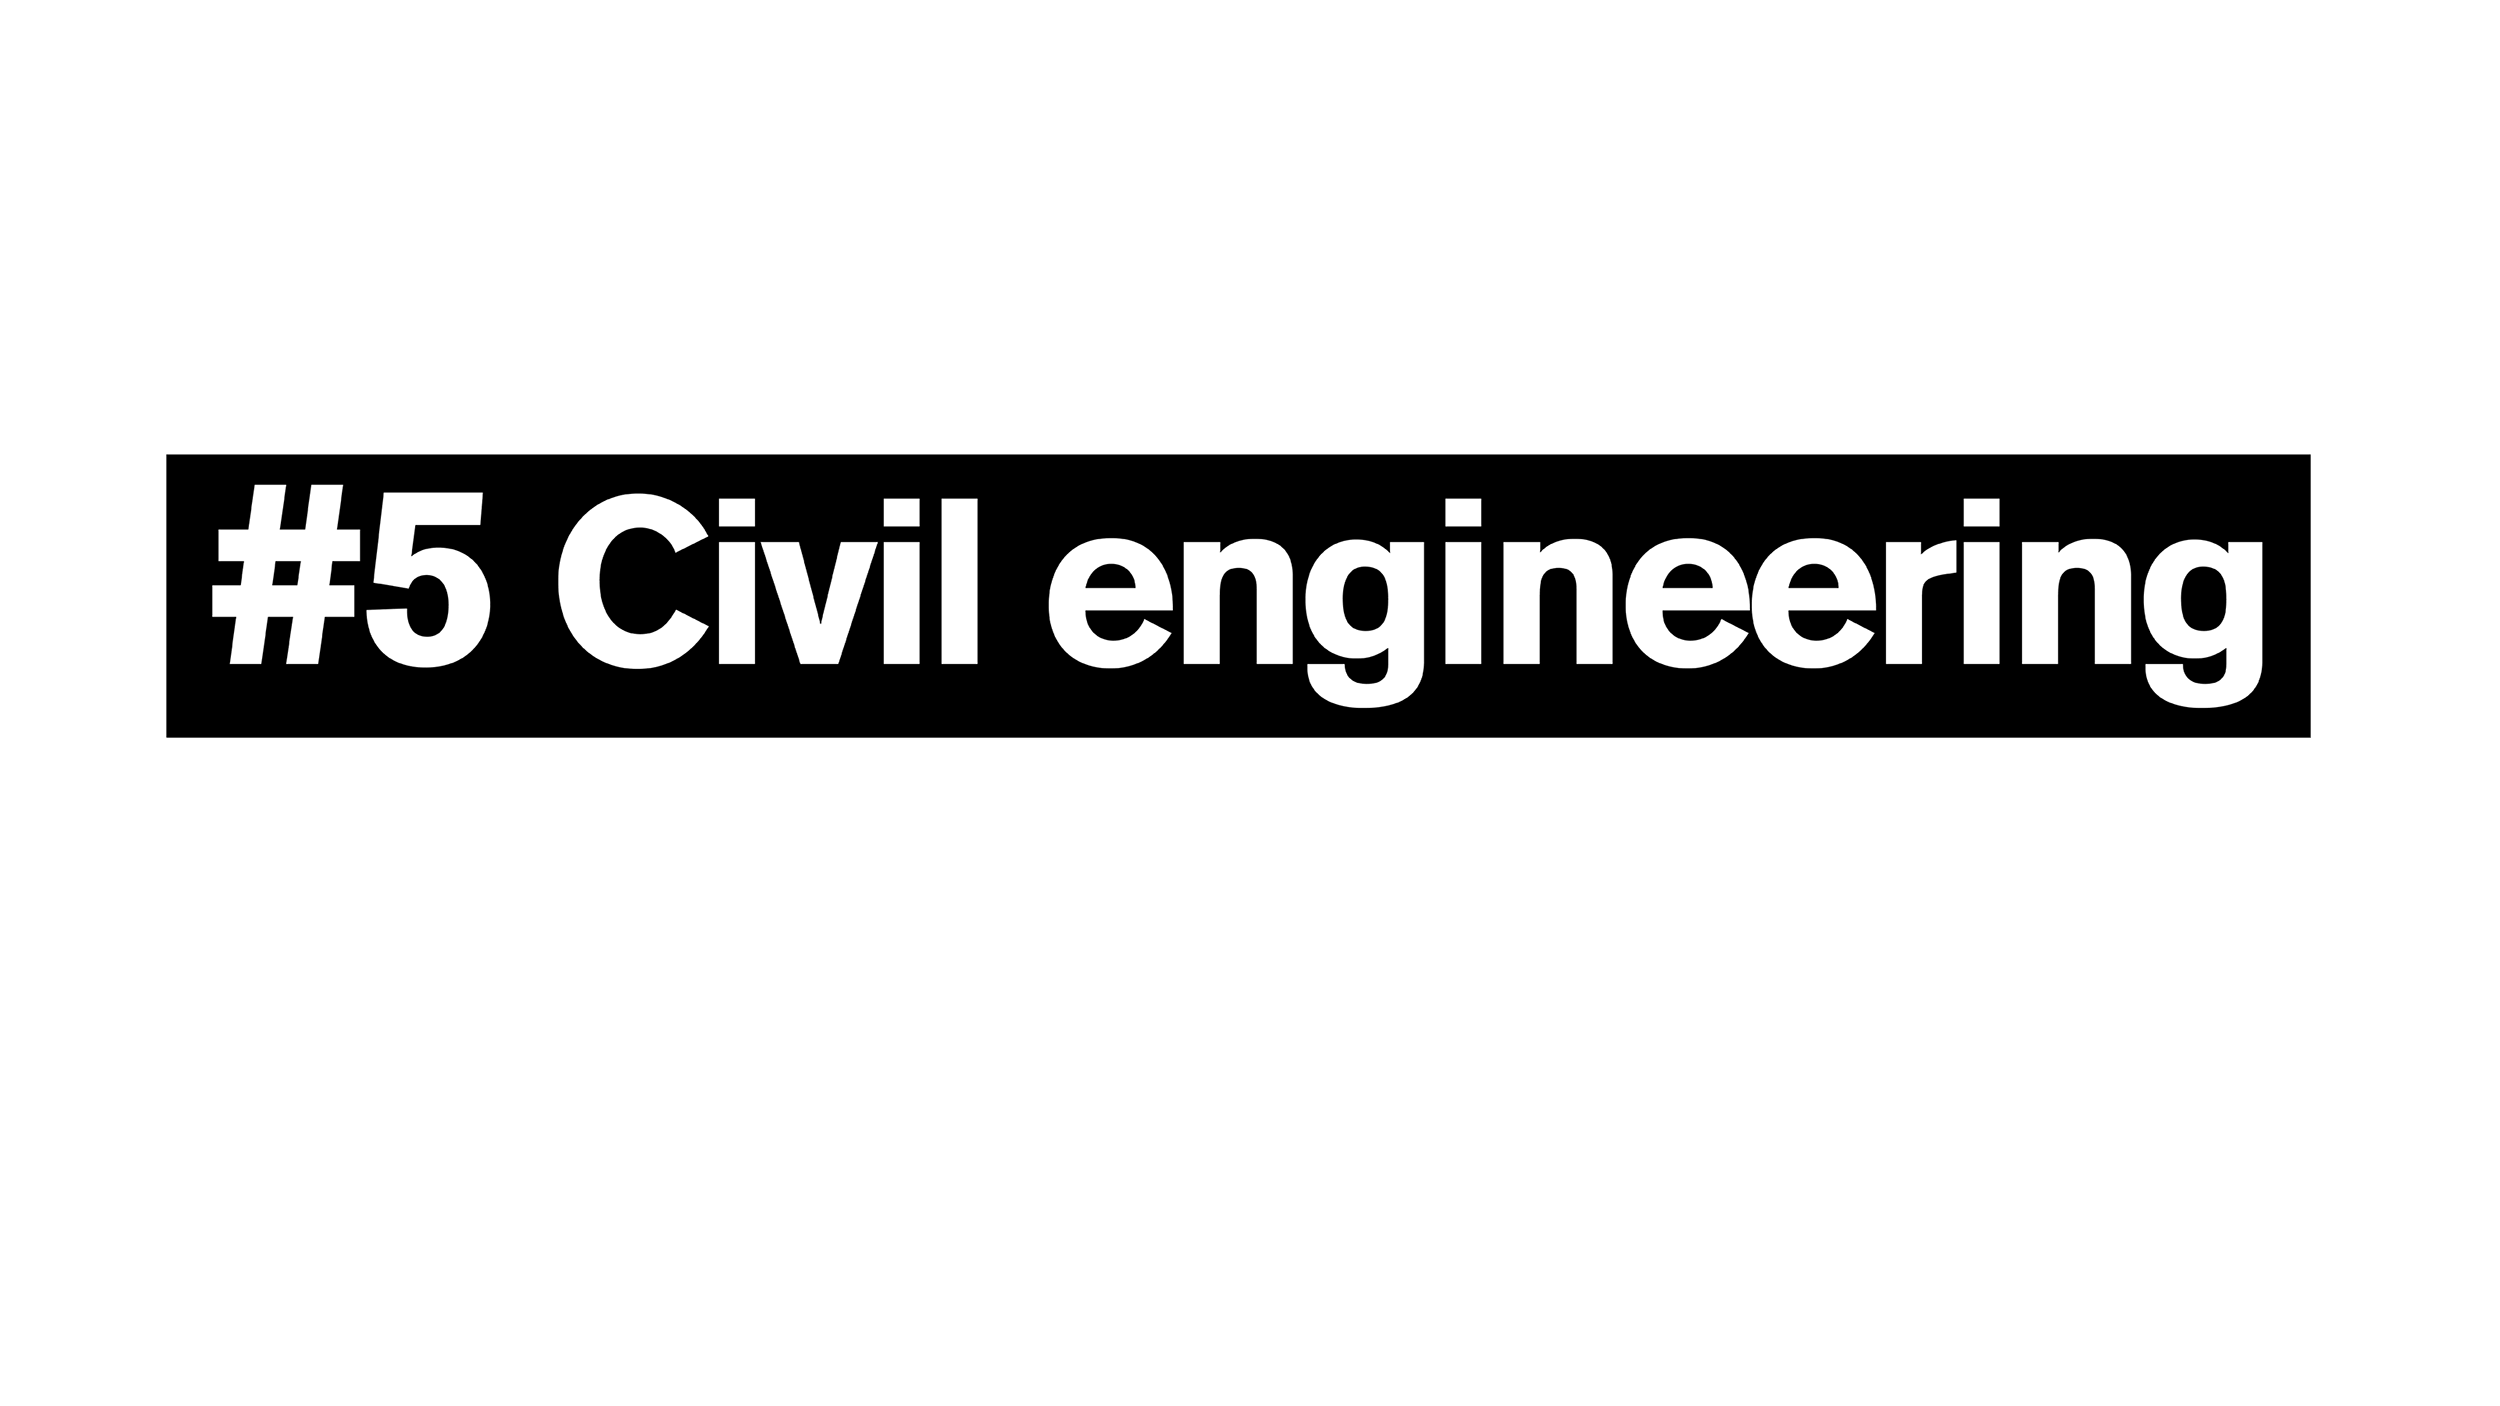 #5 Civil Engineering online master's program ranked by U.S. News and World Report